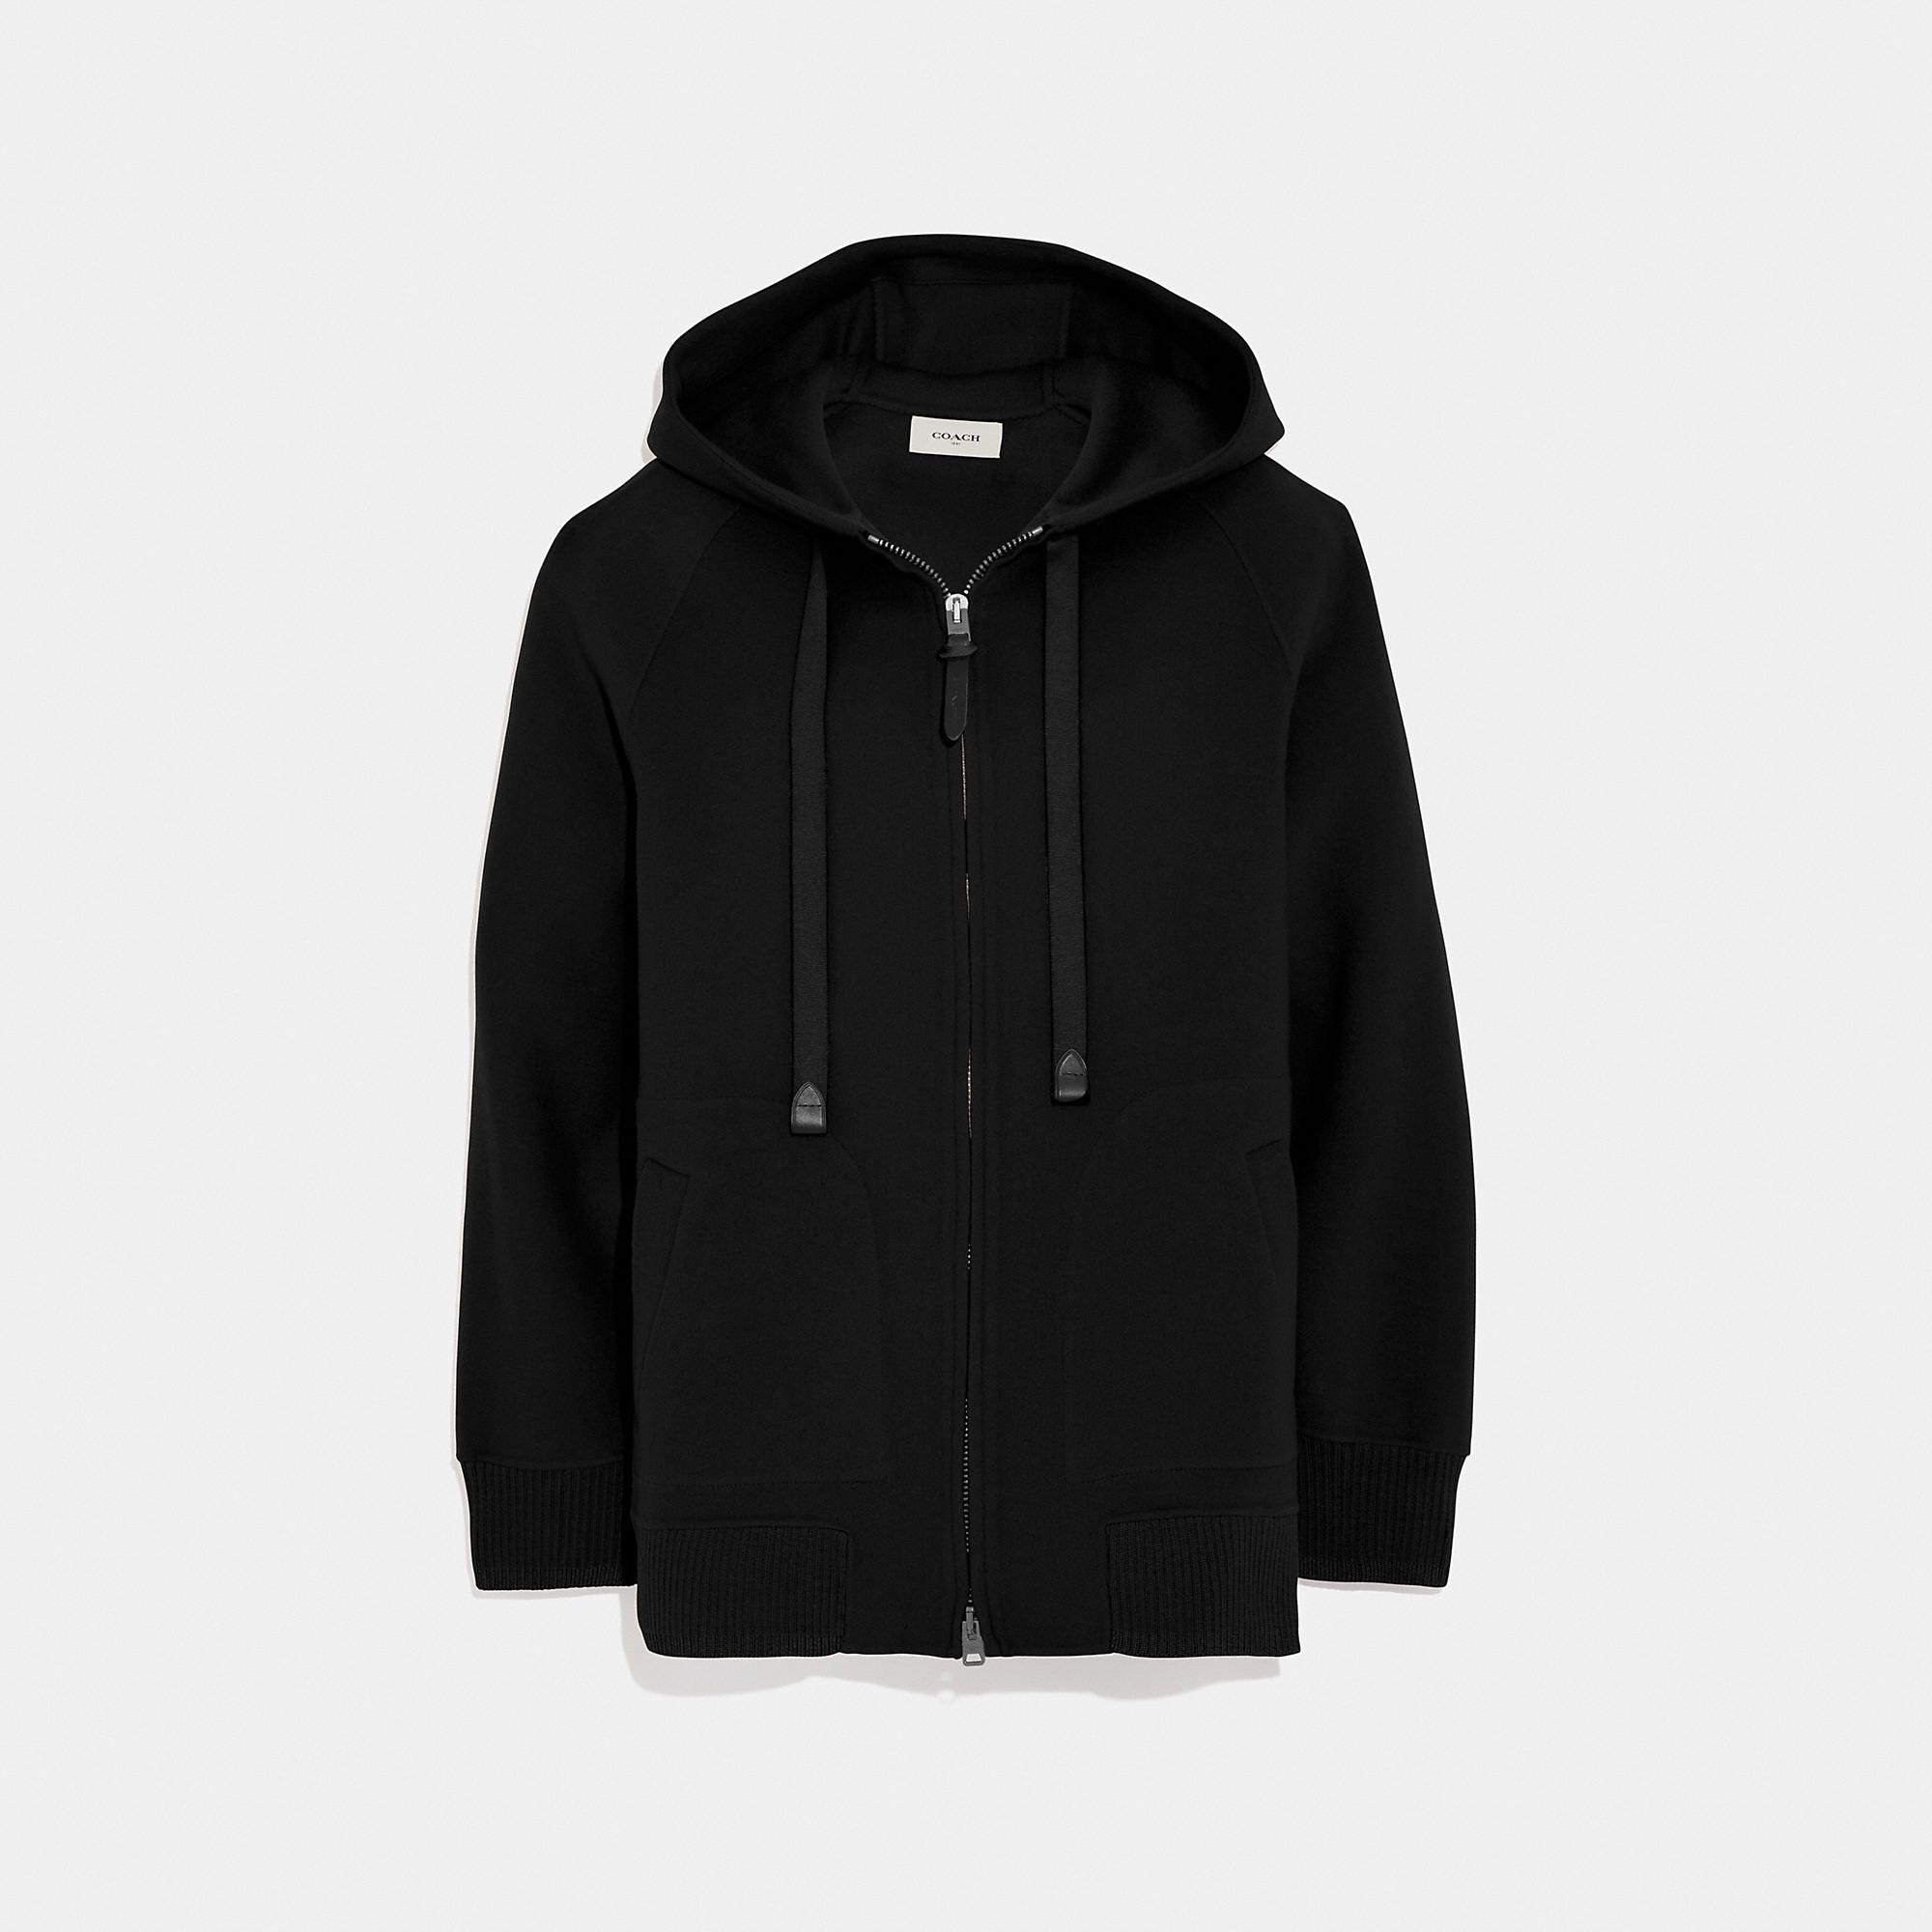 The Adidas Originals Men's Sport Luxe Moto Hoodie | Hoodies